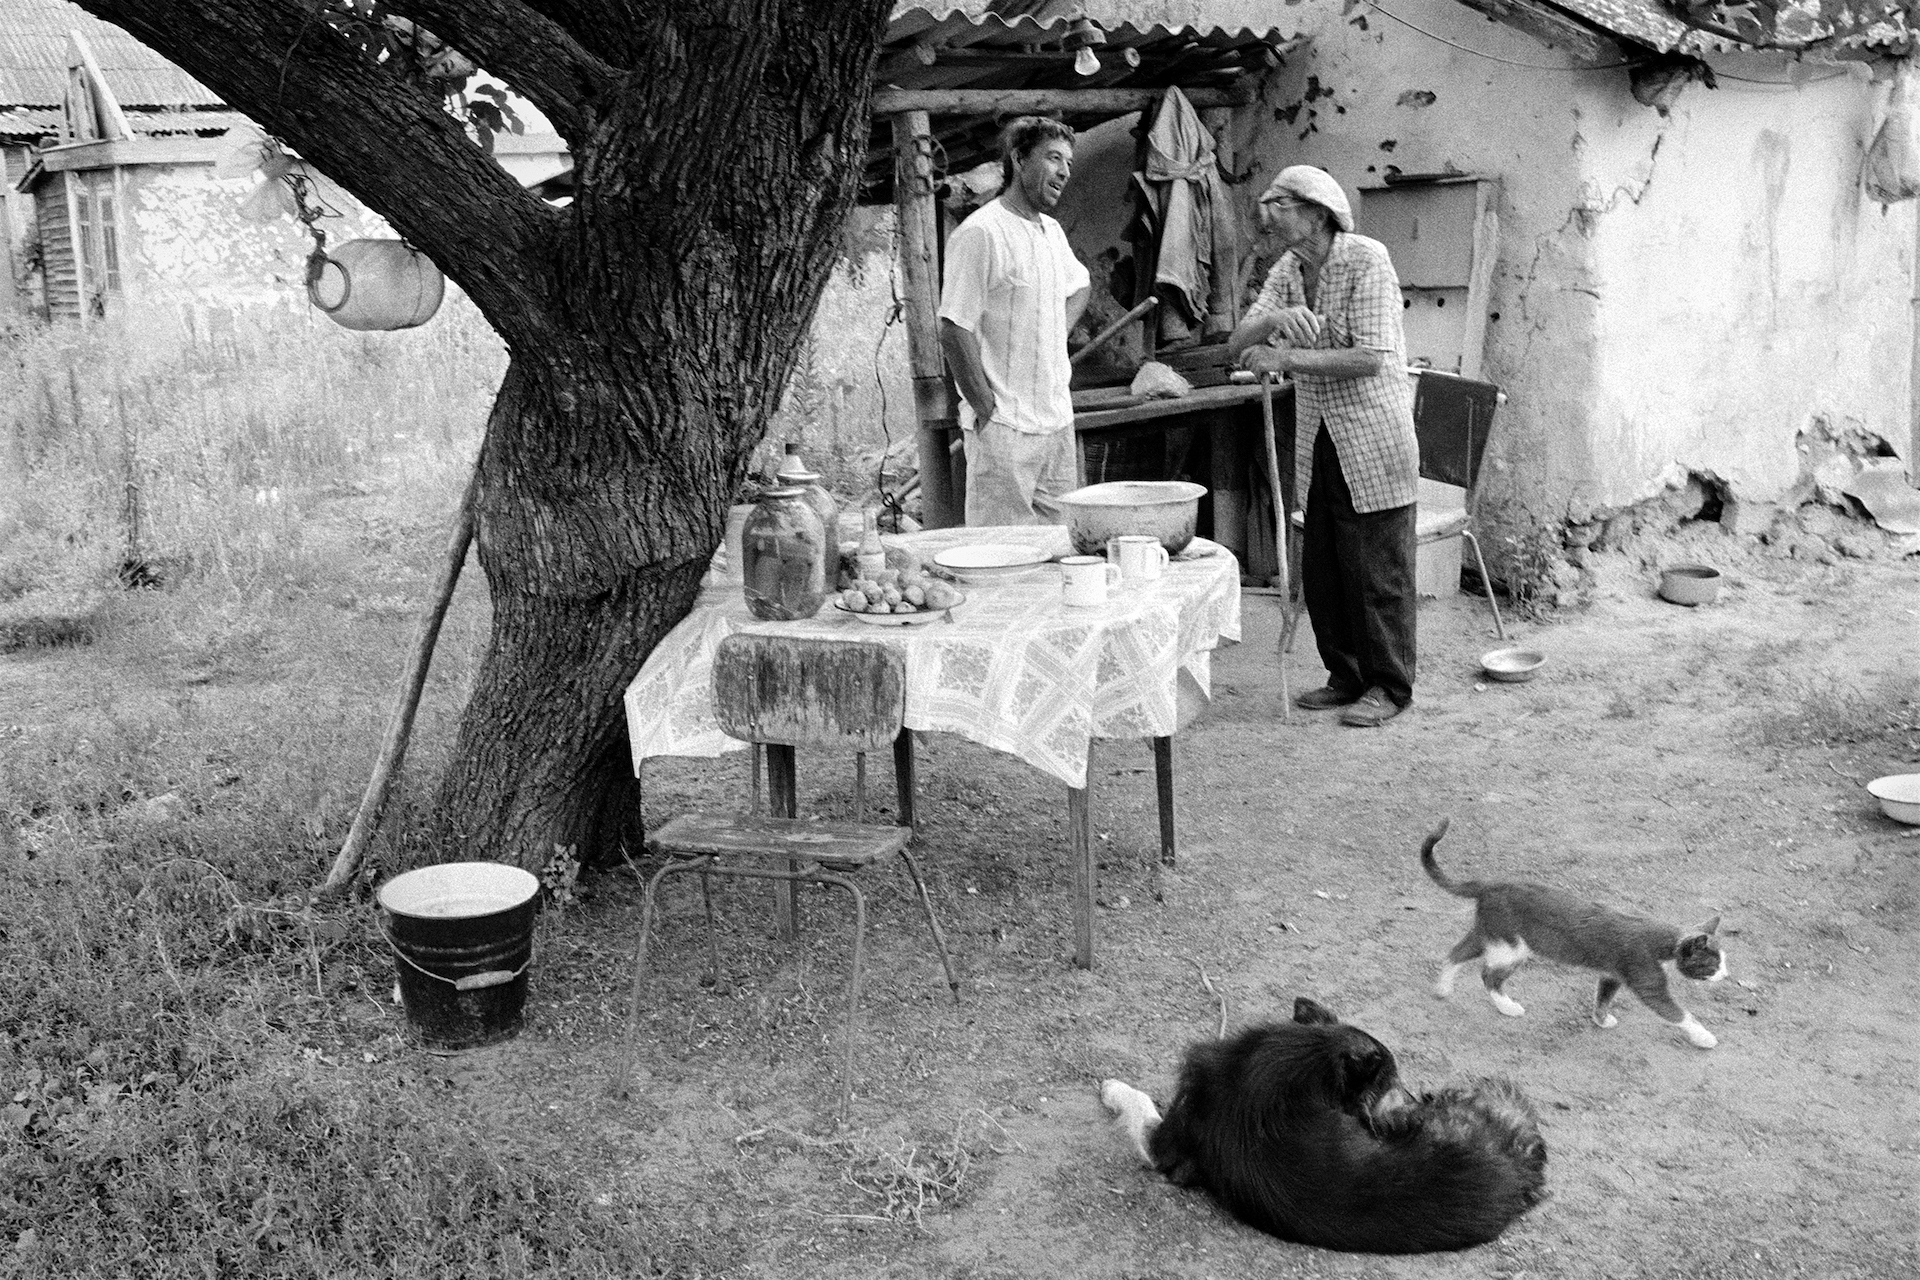 Chat in a courtyard, village of Oblivskaya district, Rostov-on-Don region, Russia (2010)